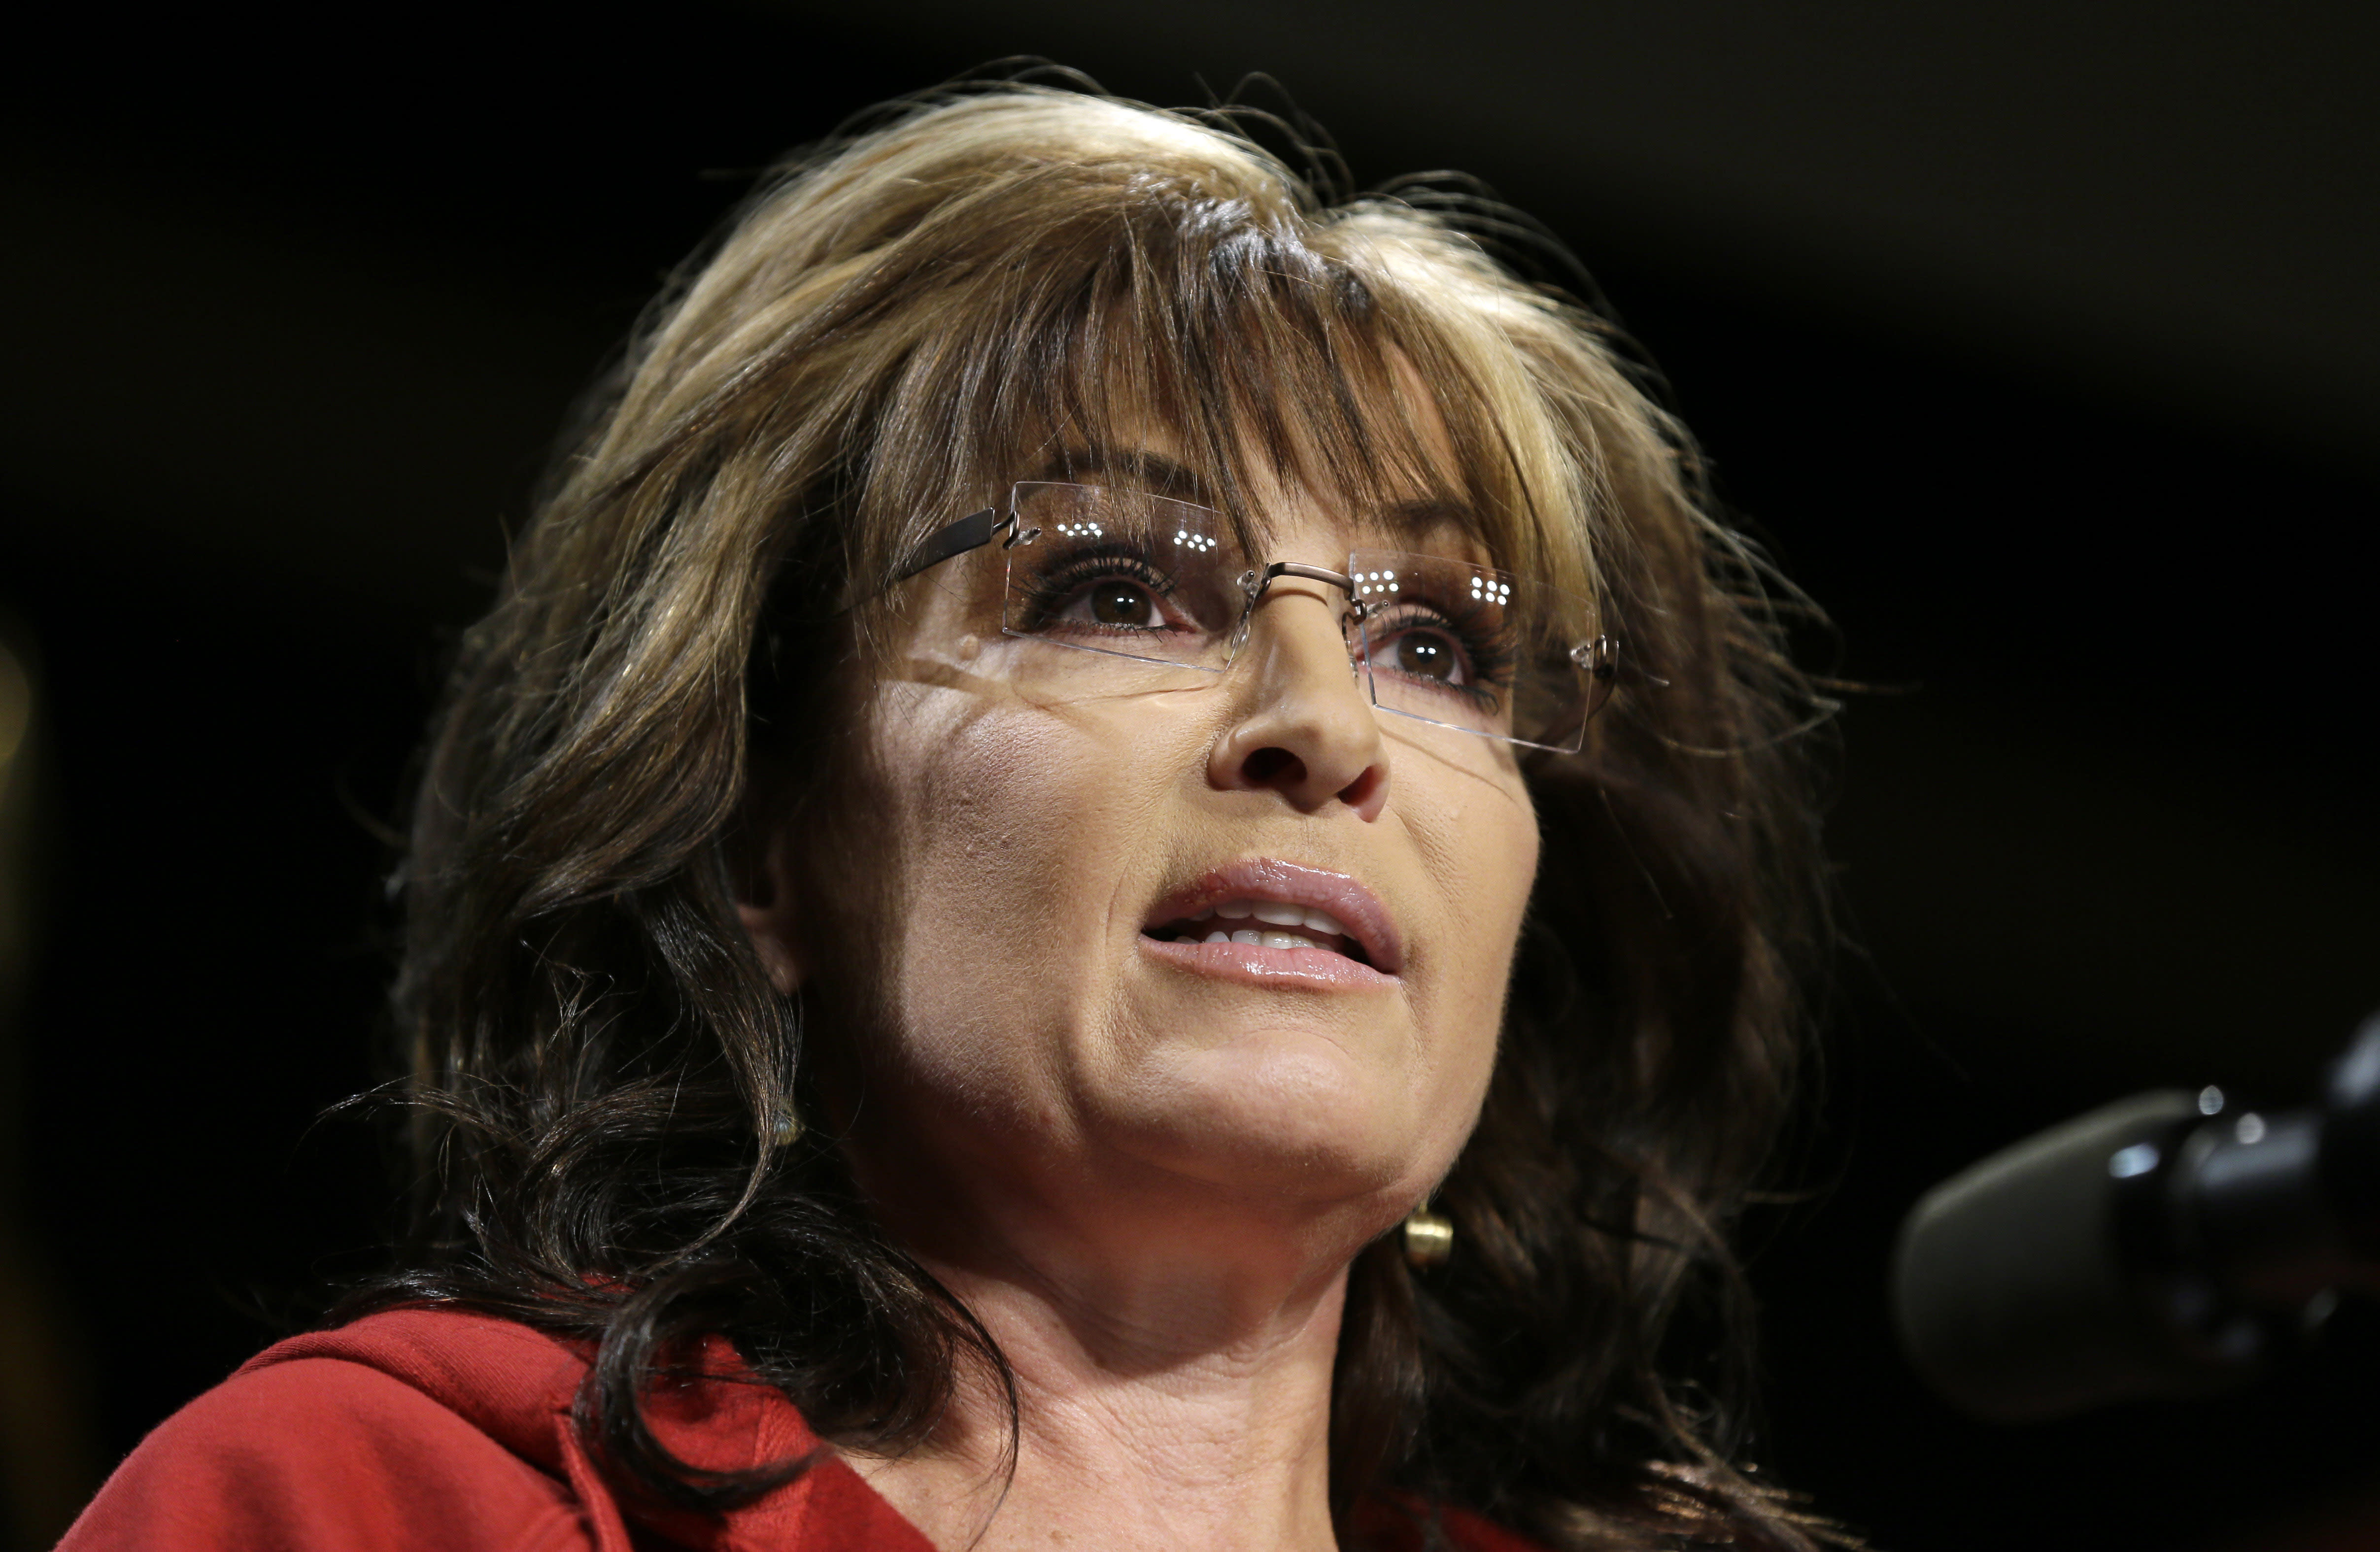 Newspaper lawsuit against Palin stalled over confidentiality